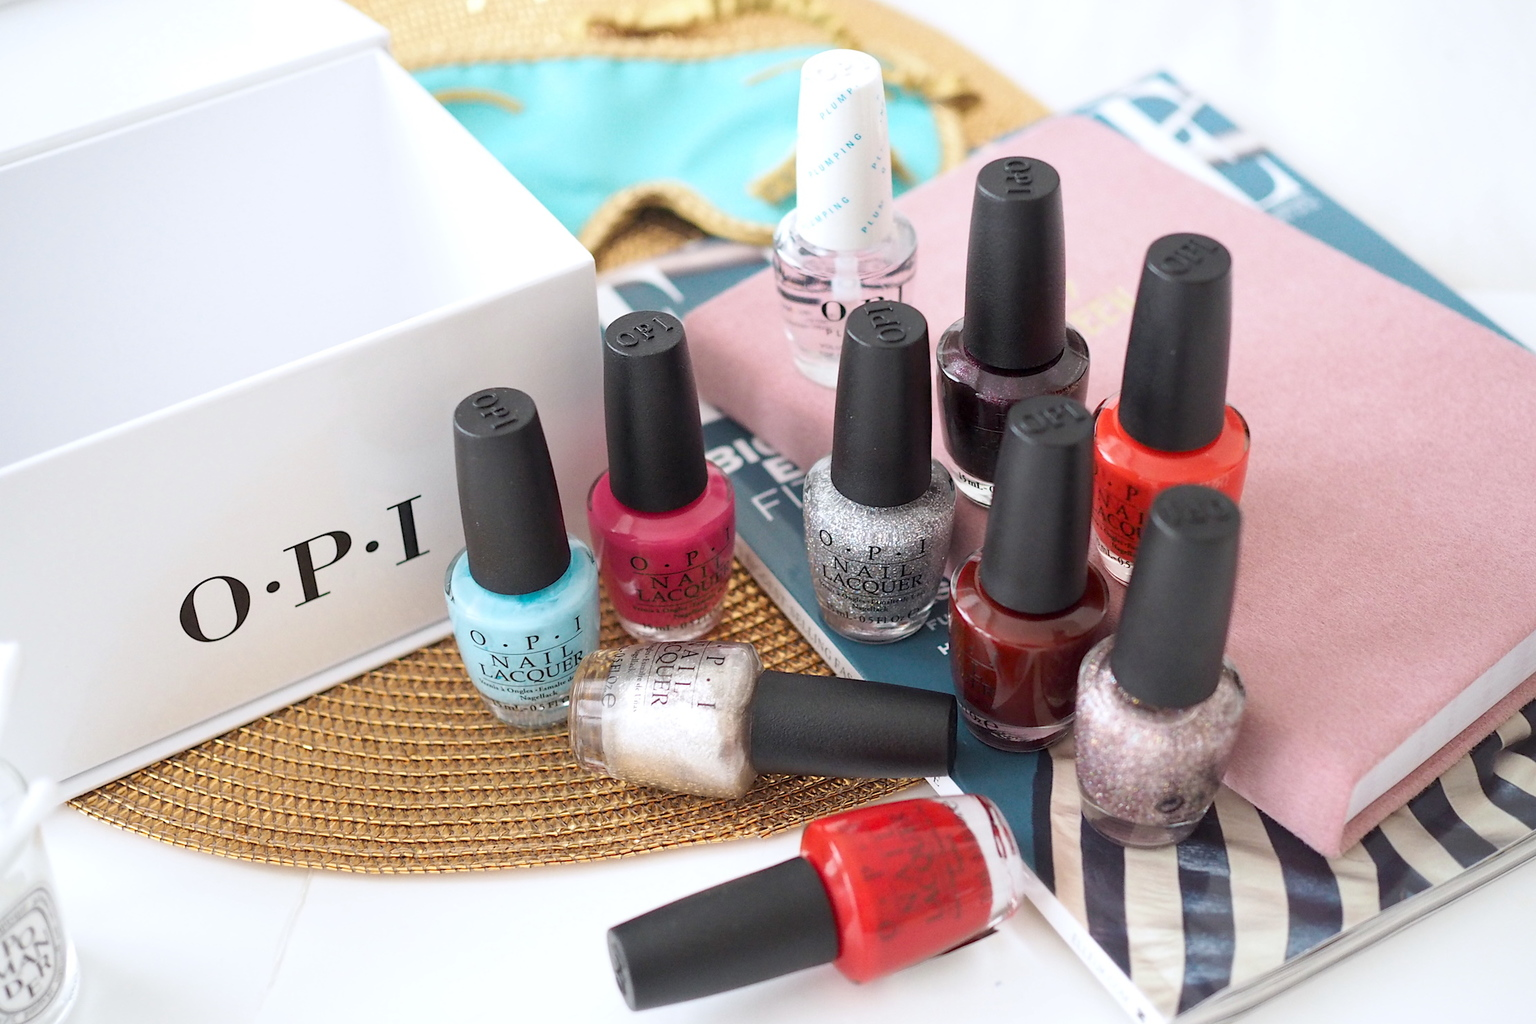 OPI LAUNCH A BREAKFAST AT TIFFANY'S HOLIDAY COLLECTION